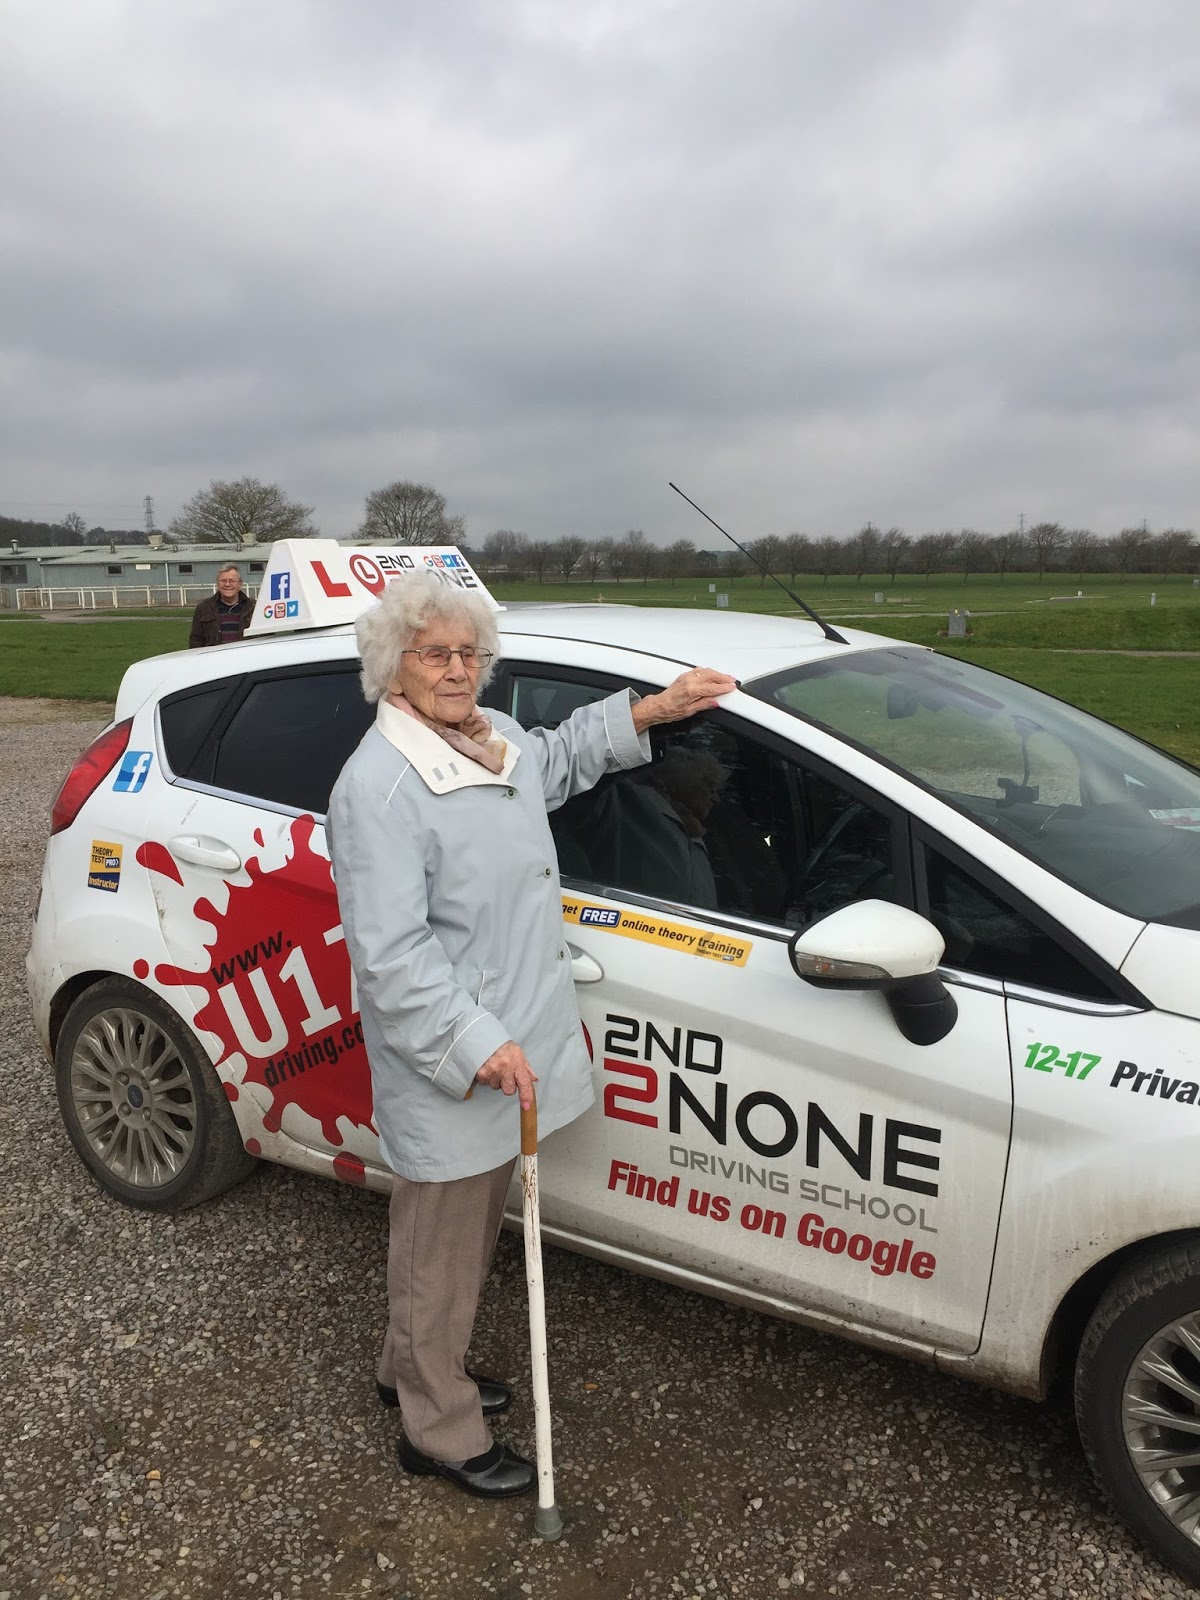 Under 17's Driving Lessons at The Royal Bath & West Showground